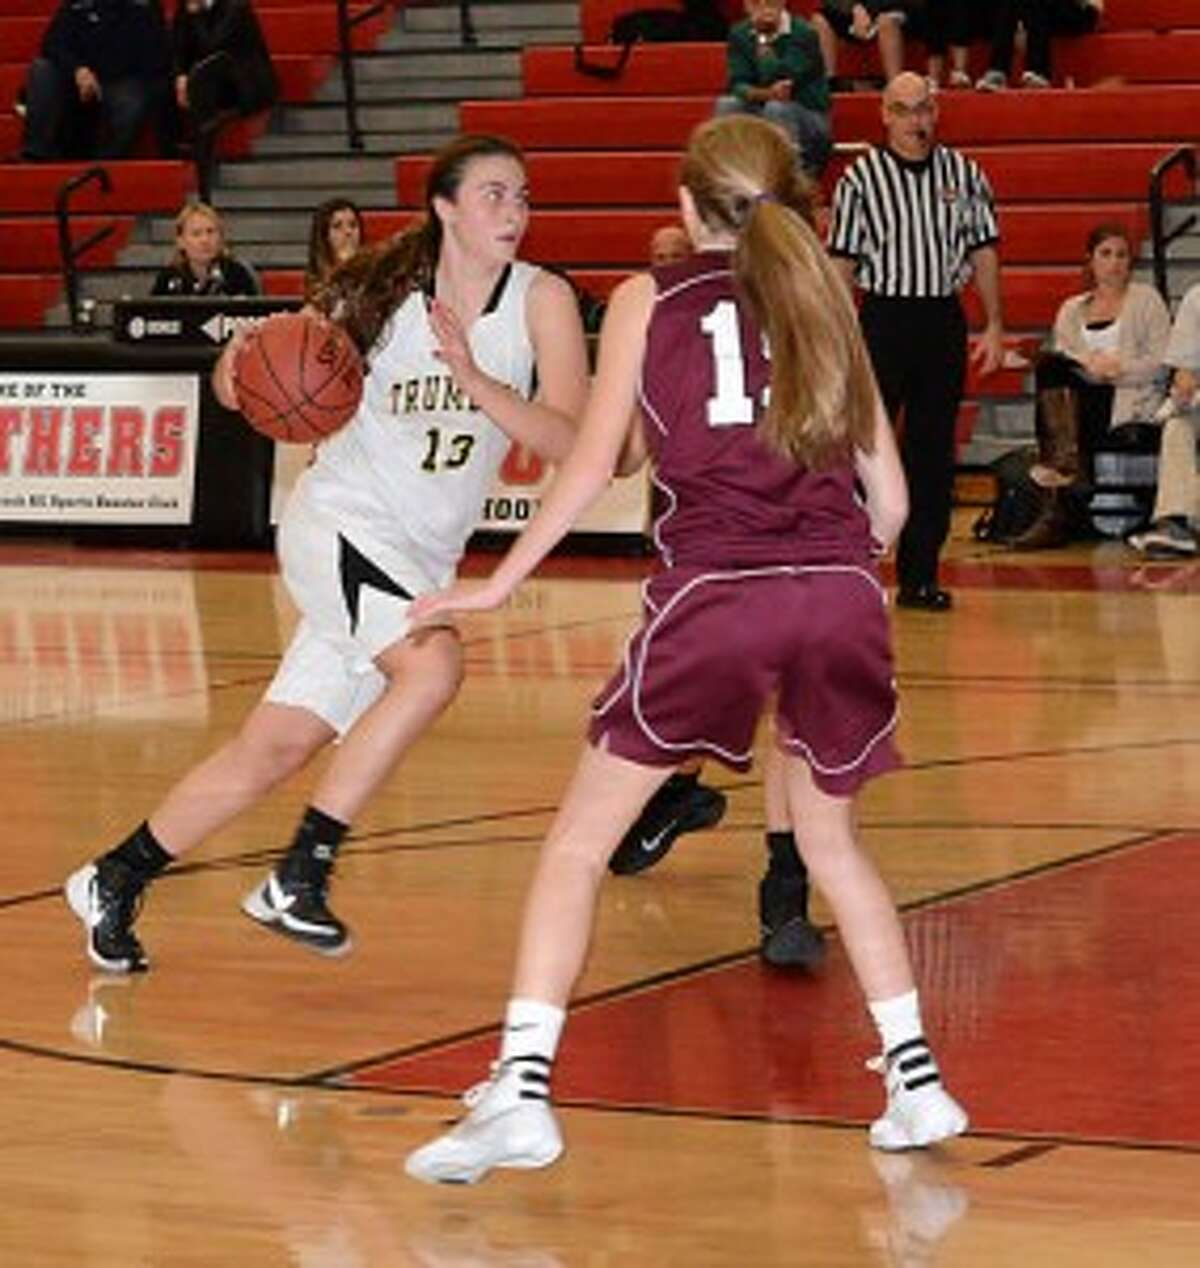 The Trumbull High girls varsity basketball team will play St. Joseph at 6 p.m. in the lidlifter of the 9th annual Officials vs Cancer fundraiser at Fairfield University on Saturday, Jan. 9. - Andy Hutchison photo